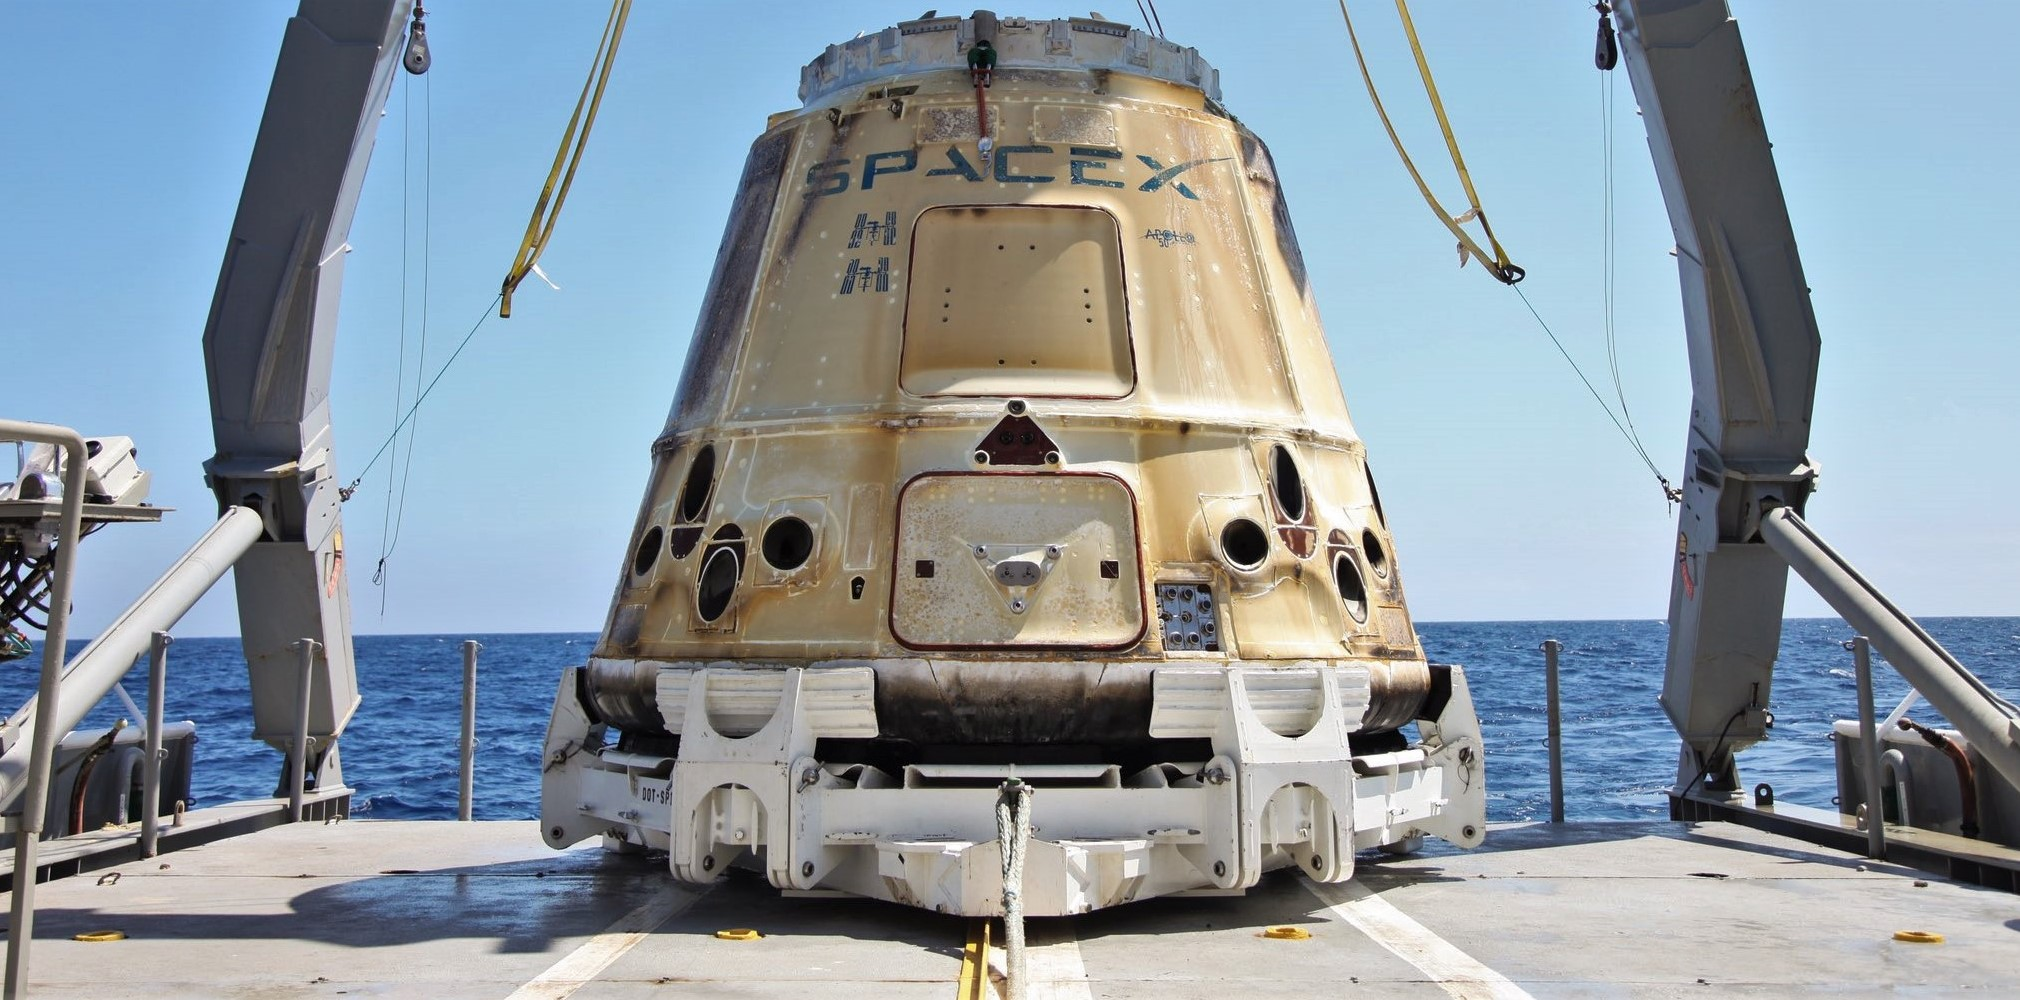 Cargo Dragon C108 CRS-18 recovery 082719 (SpaceX) 1 crop